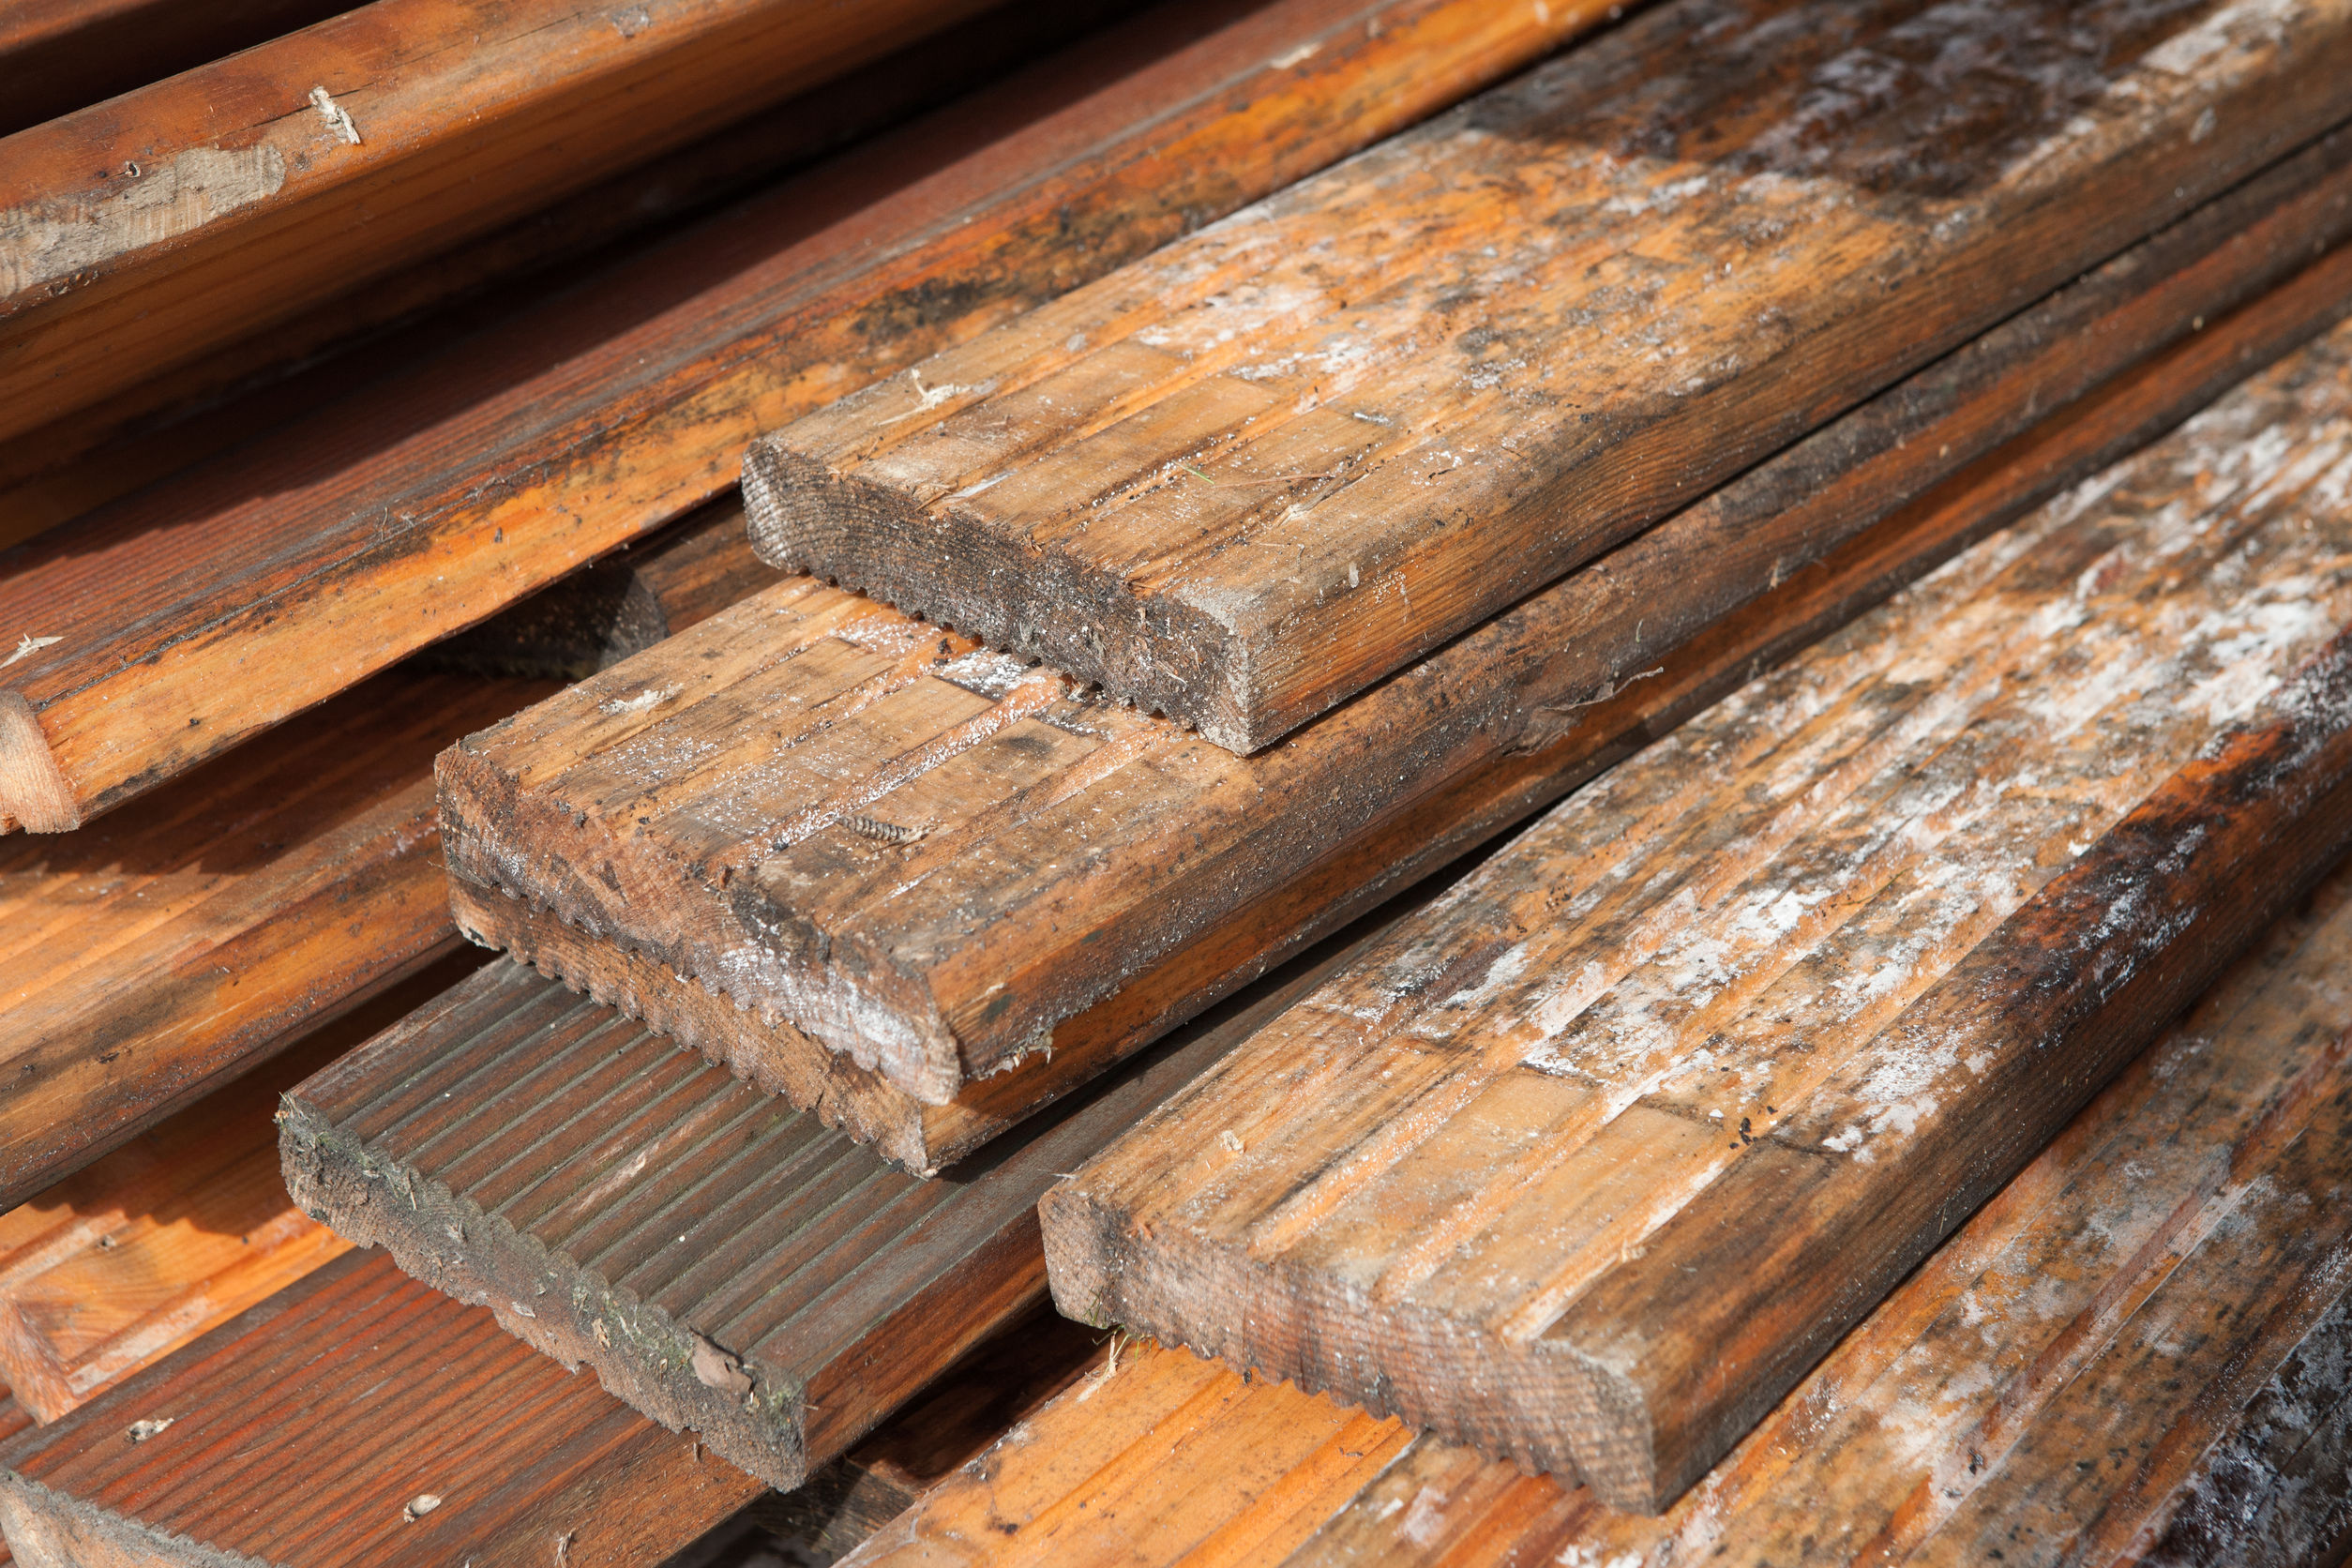 Mold Hardwood Floors Safety and Preparing The Removal